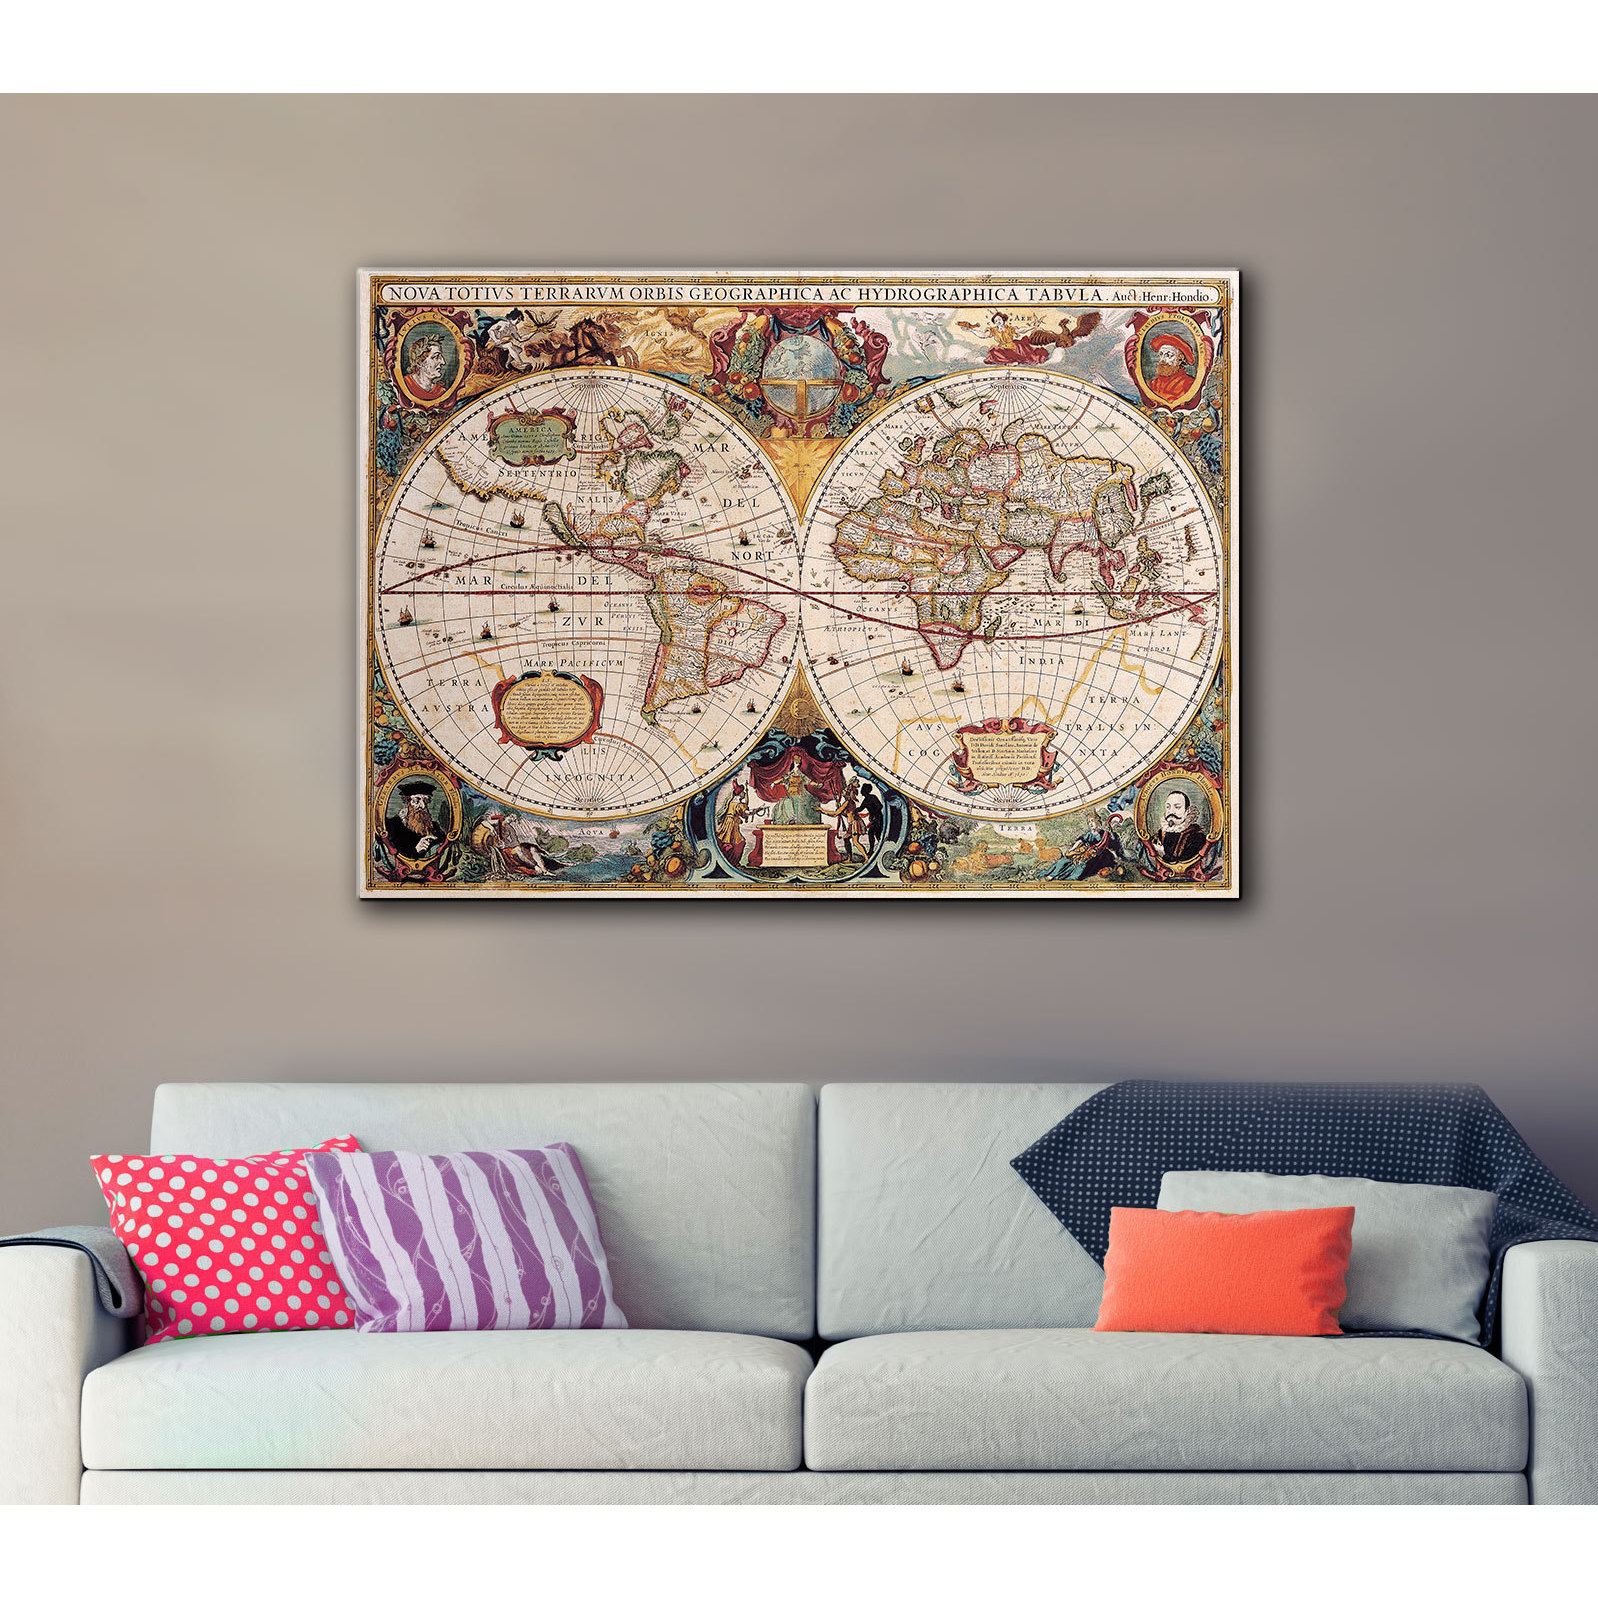 Henricus hondius a new and accurate map of the world gallery henricus hondius a new and accurate map of the world gallery wrapped canvas multi free shipping today overstock 15257449 gumiabroncs Image collections